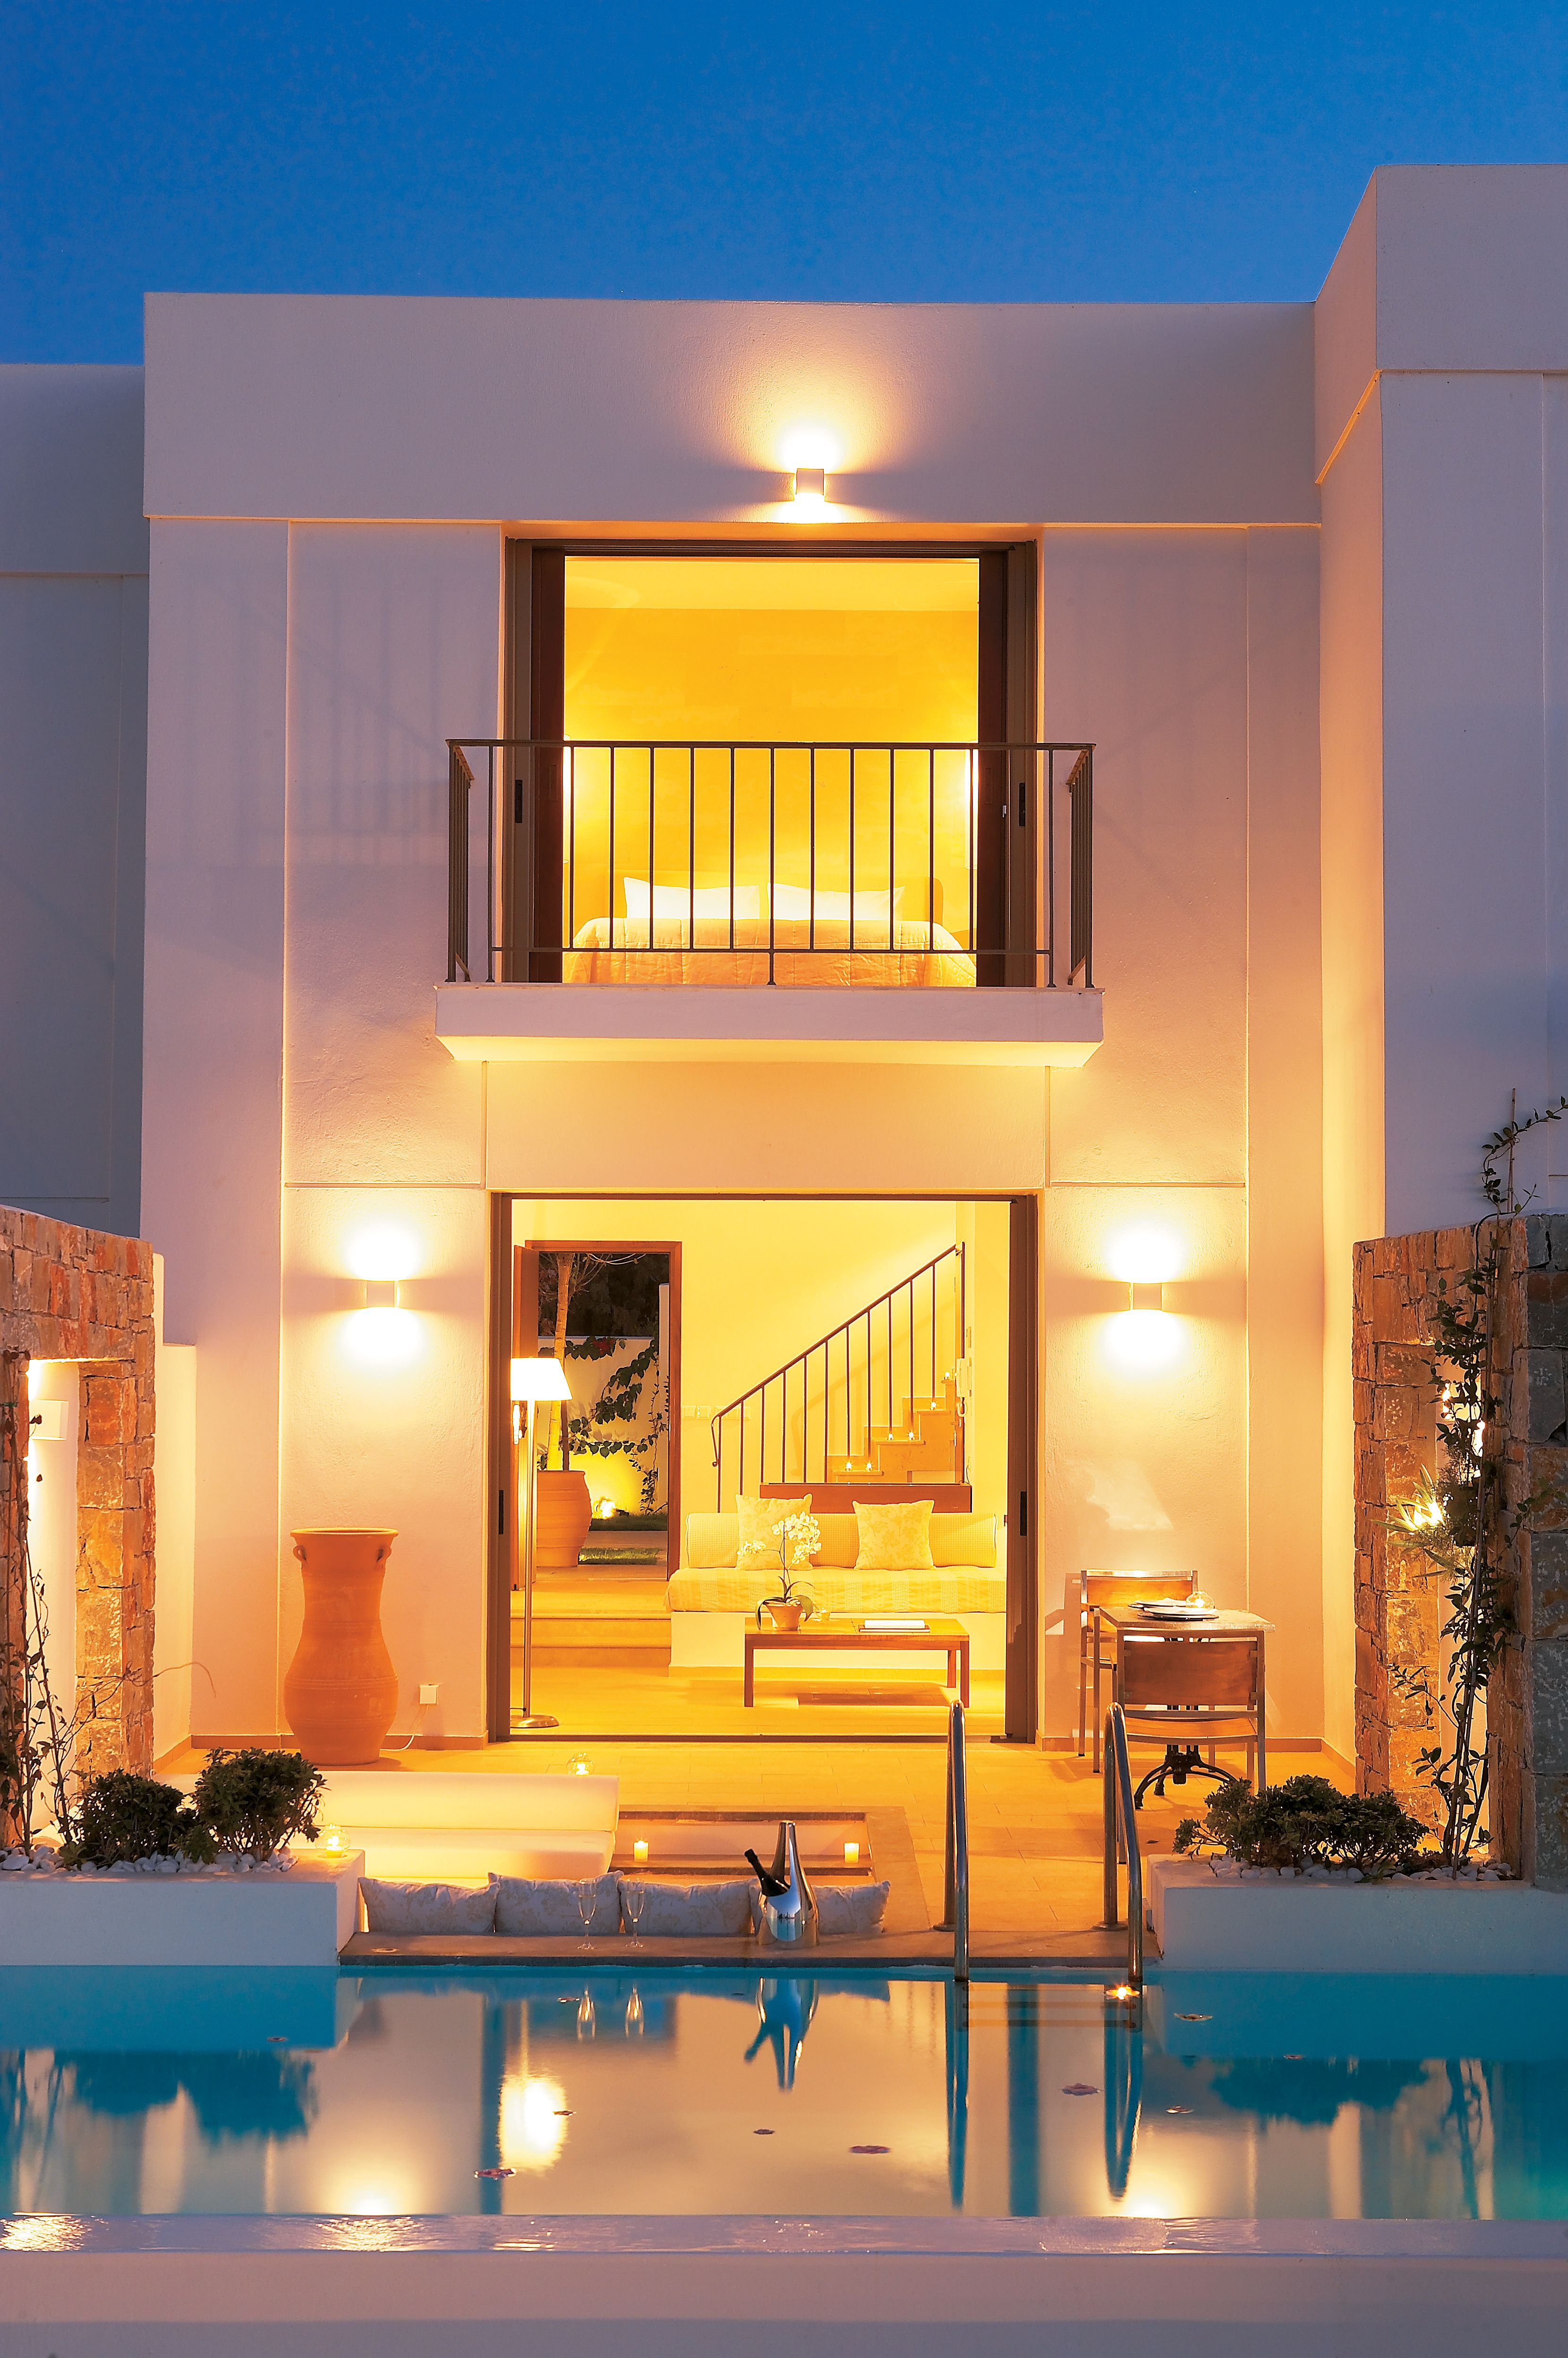 Grecotel amirandes best places in greece best hotels